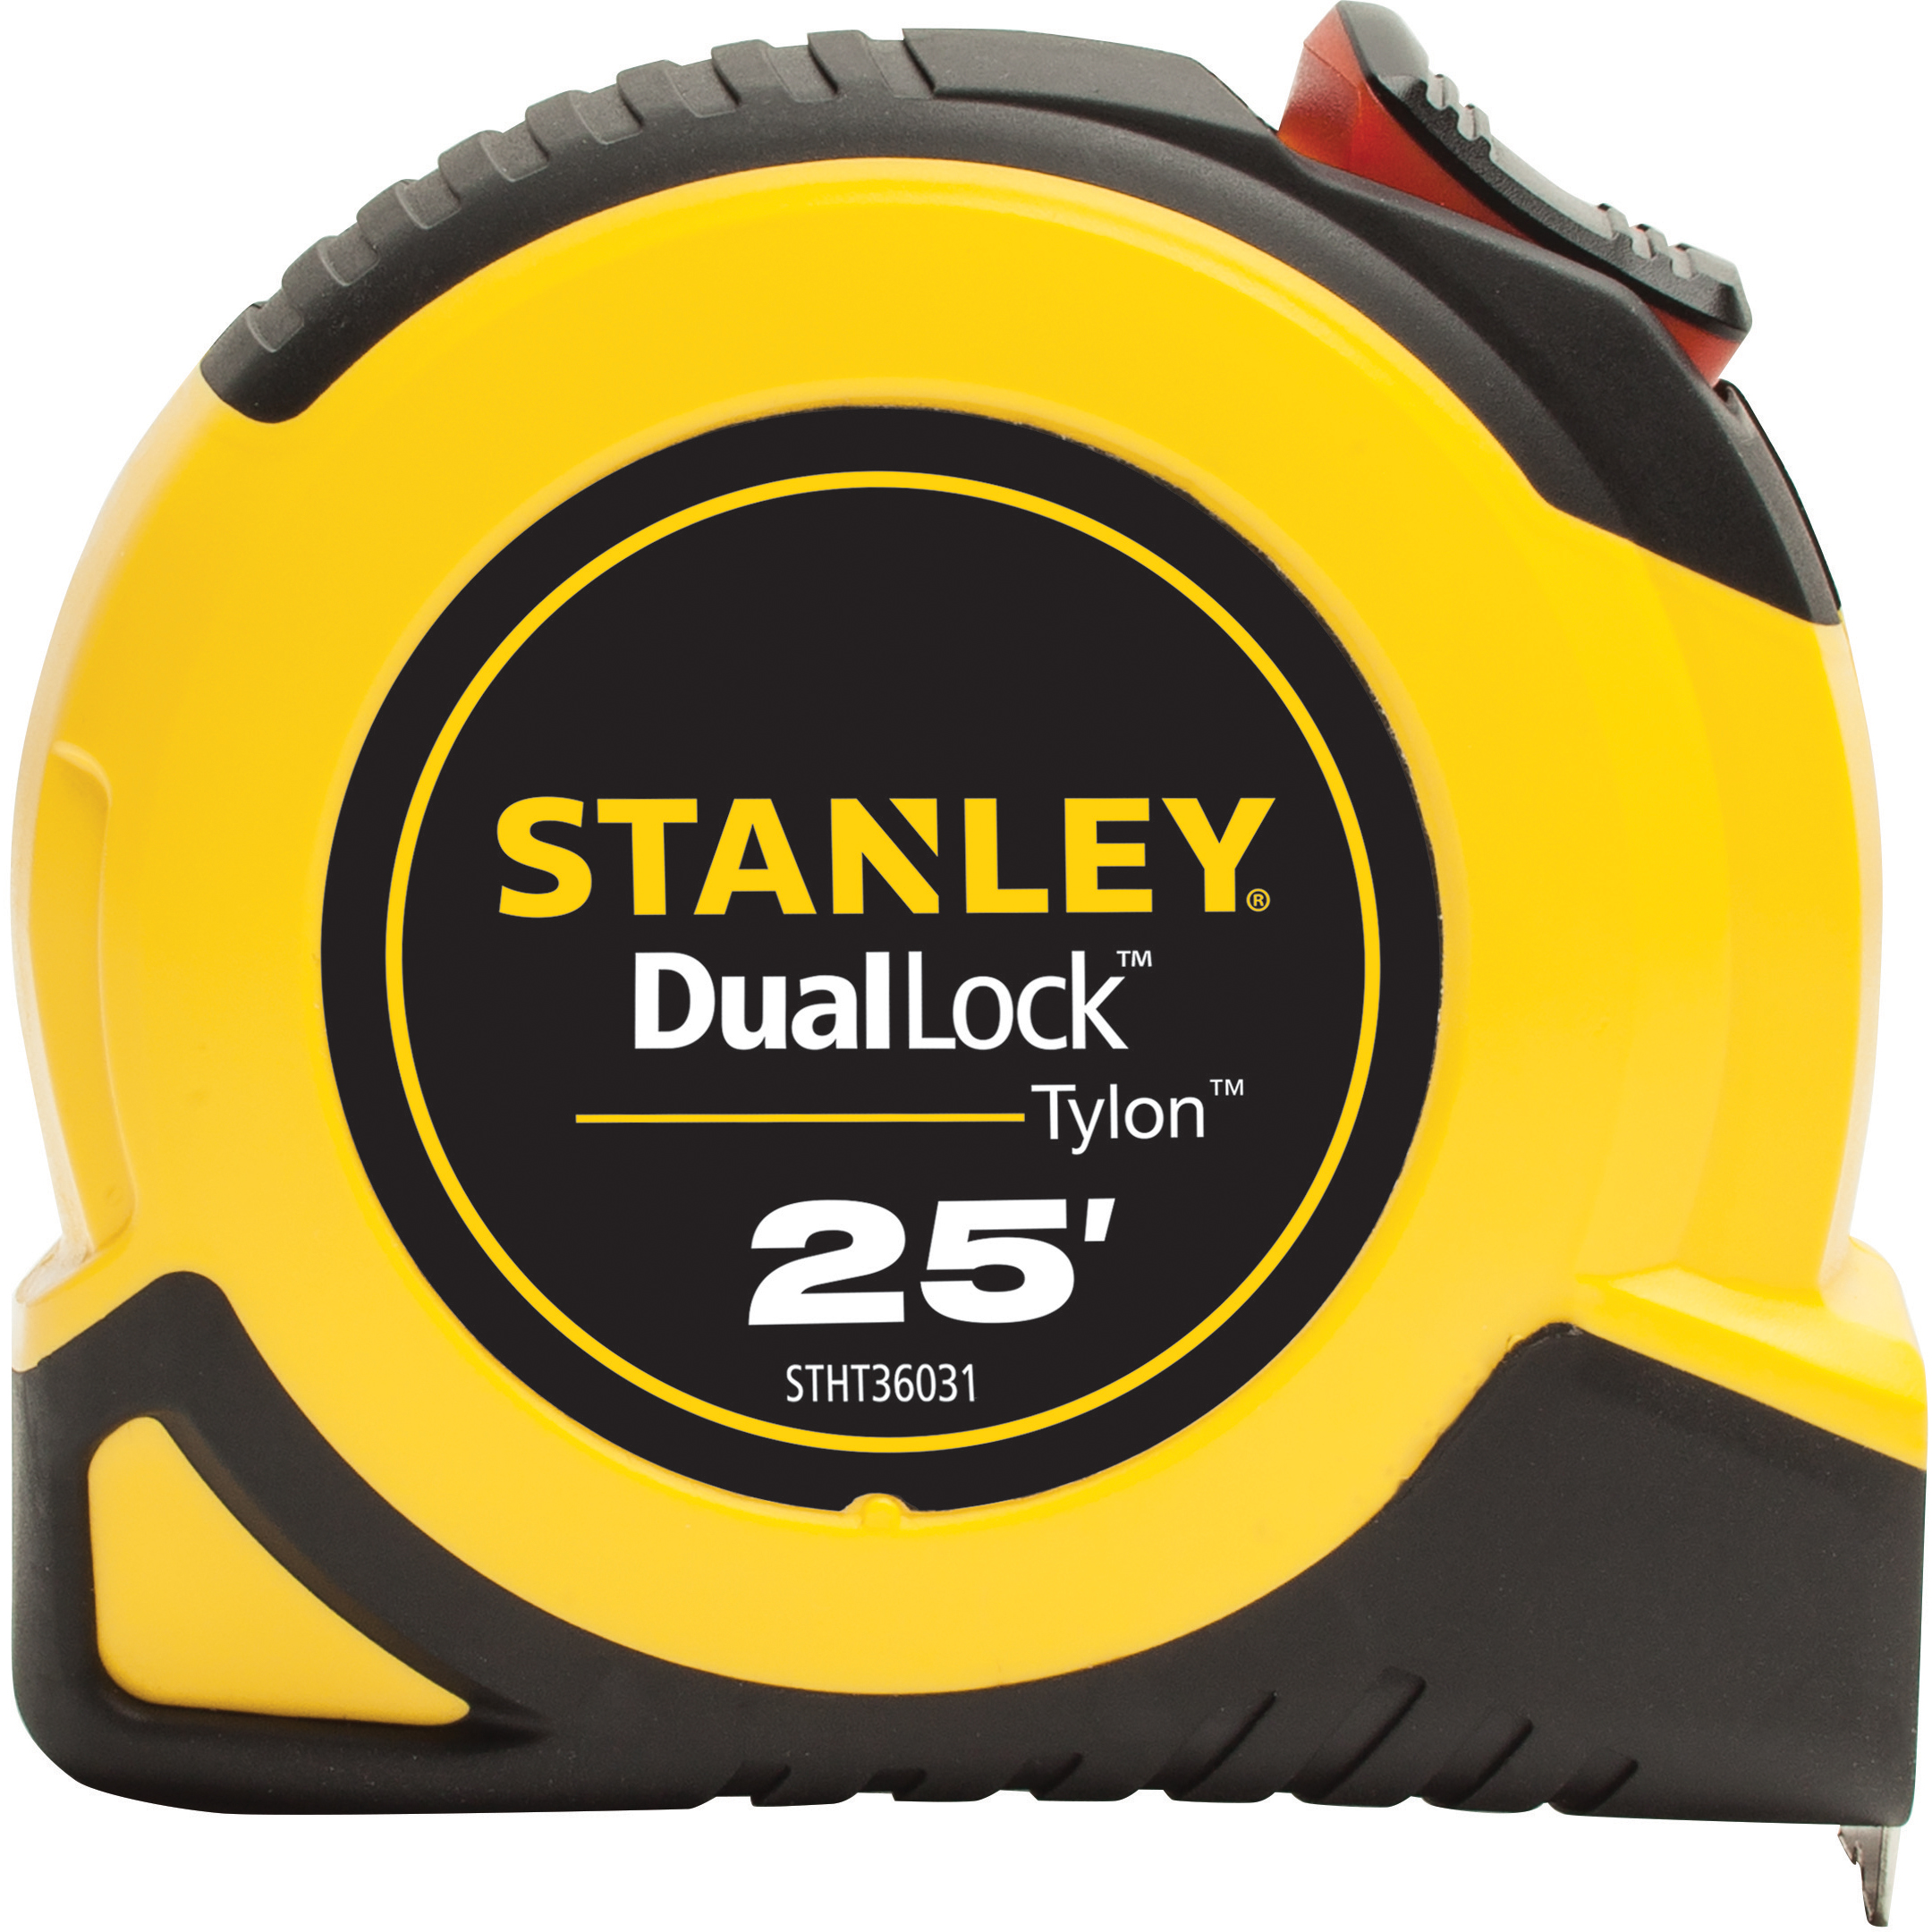 STANLEY STHT36031WM 25FT Dual Lock Tape Measure